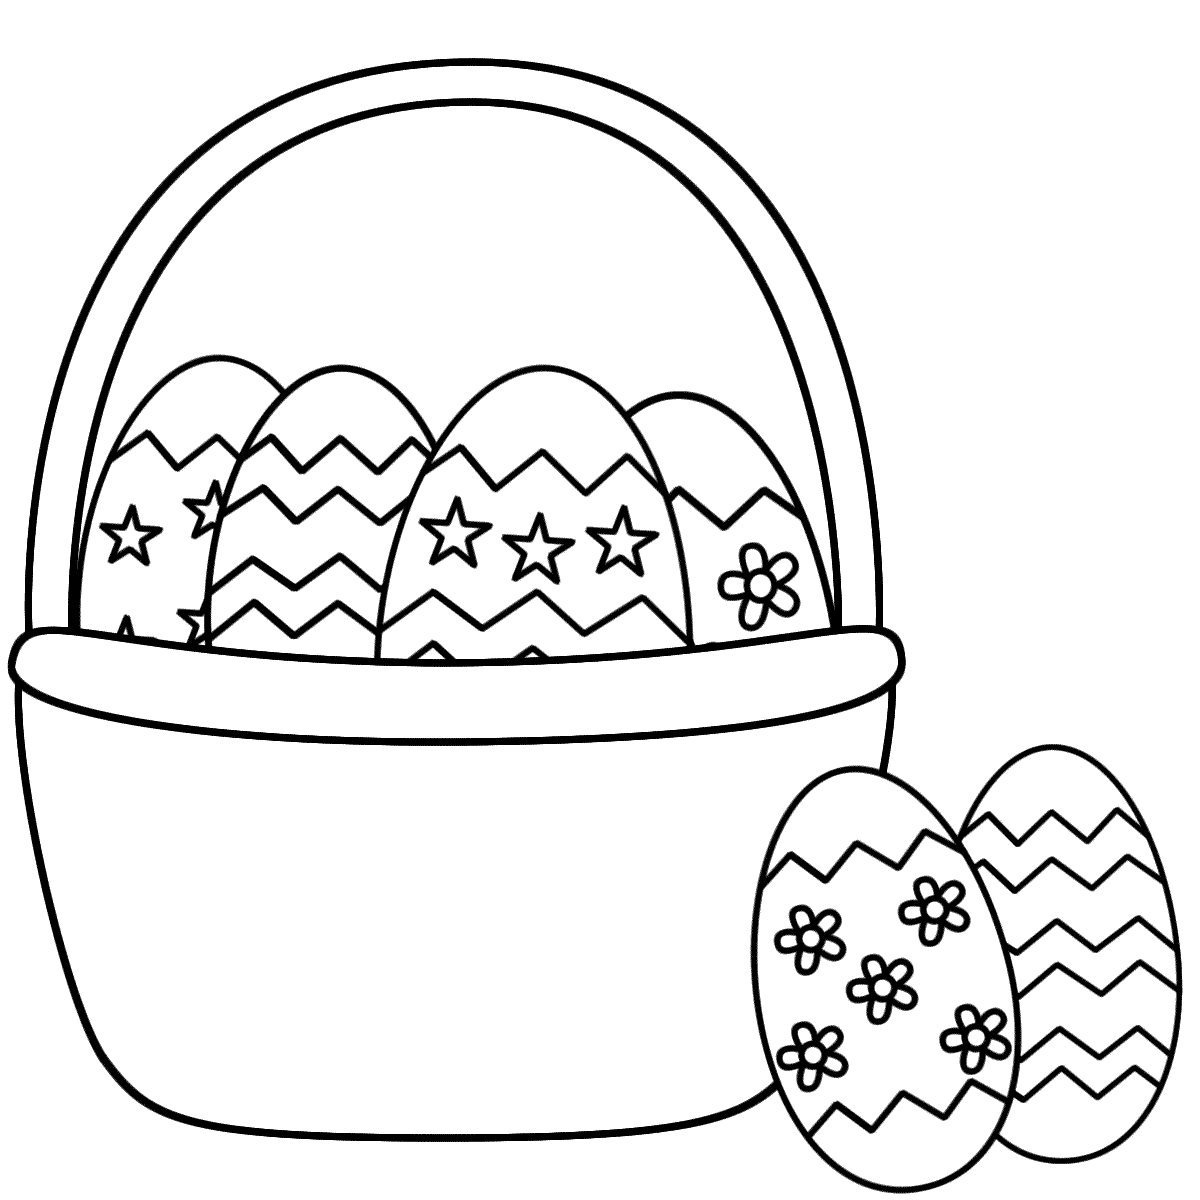 1200x1200 Easter Basket Coloring Pages Freecolorngpages Co